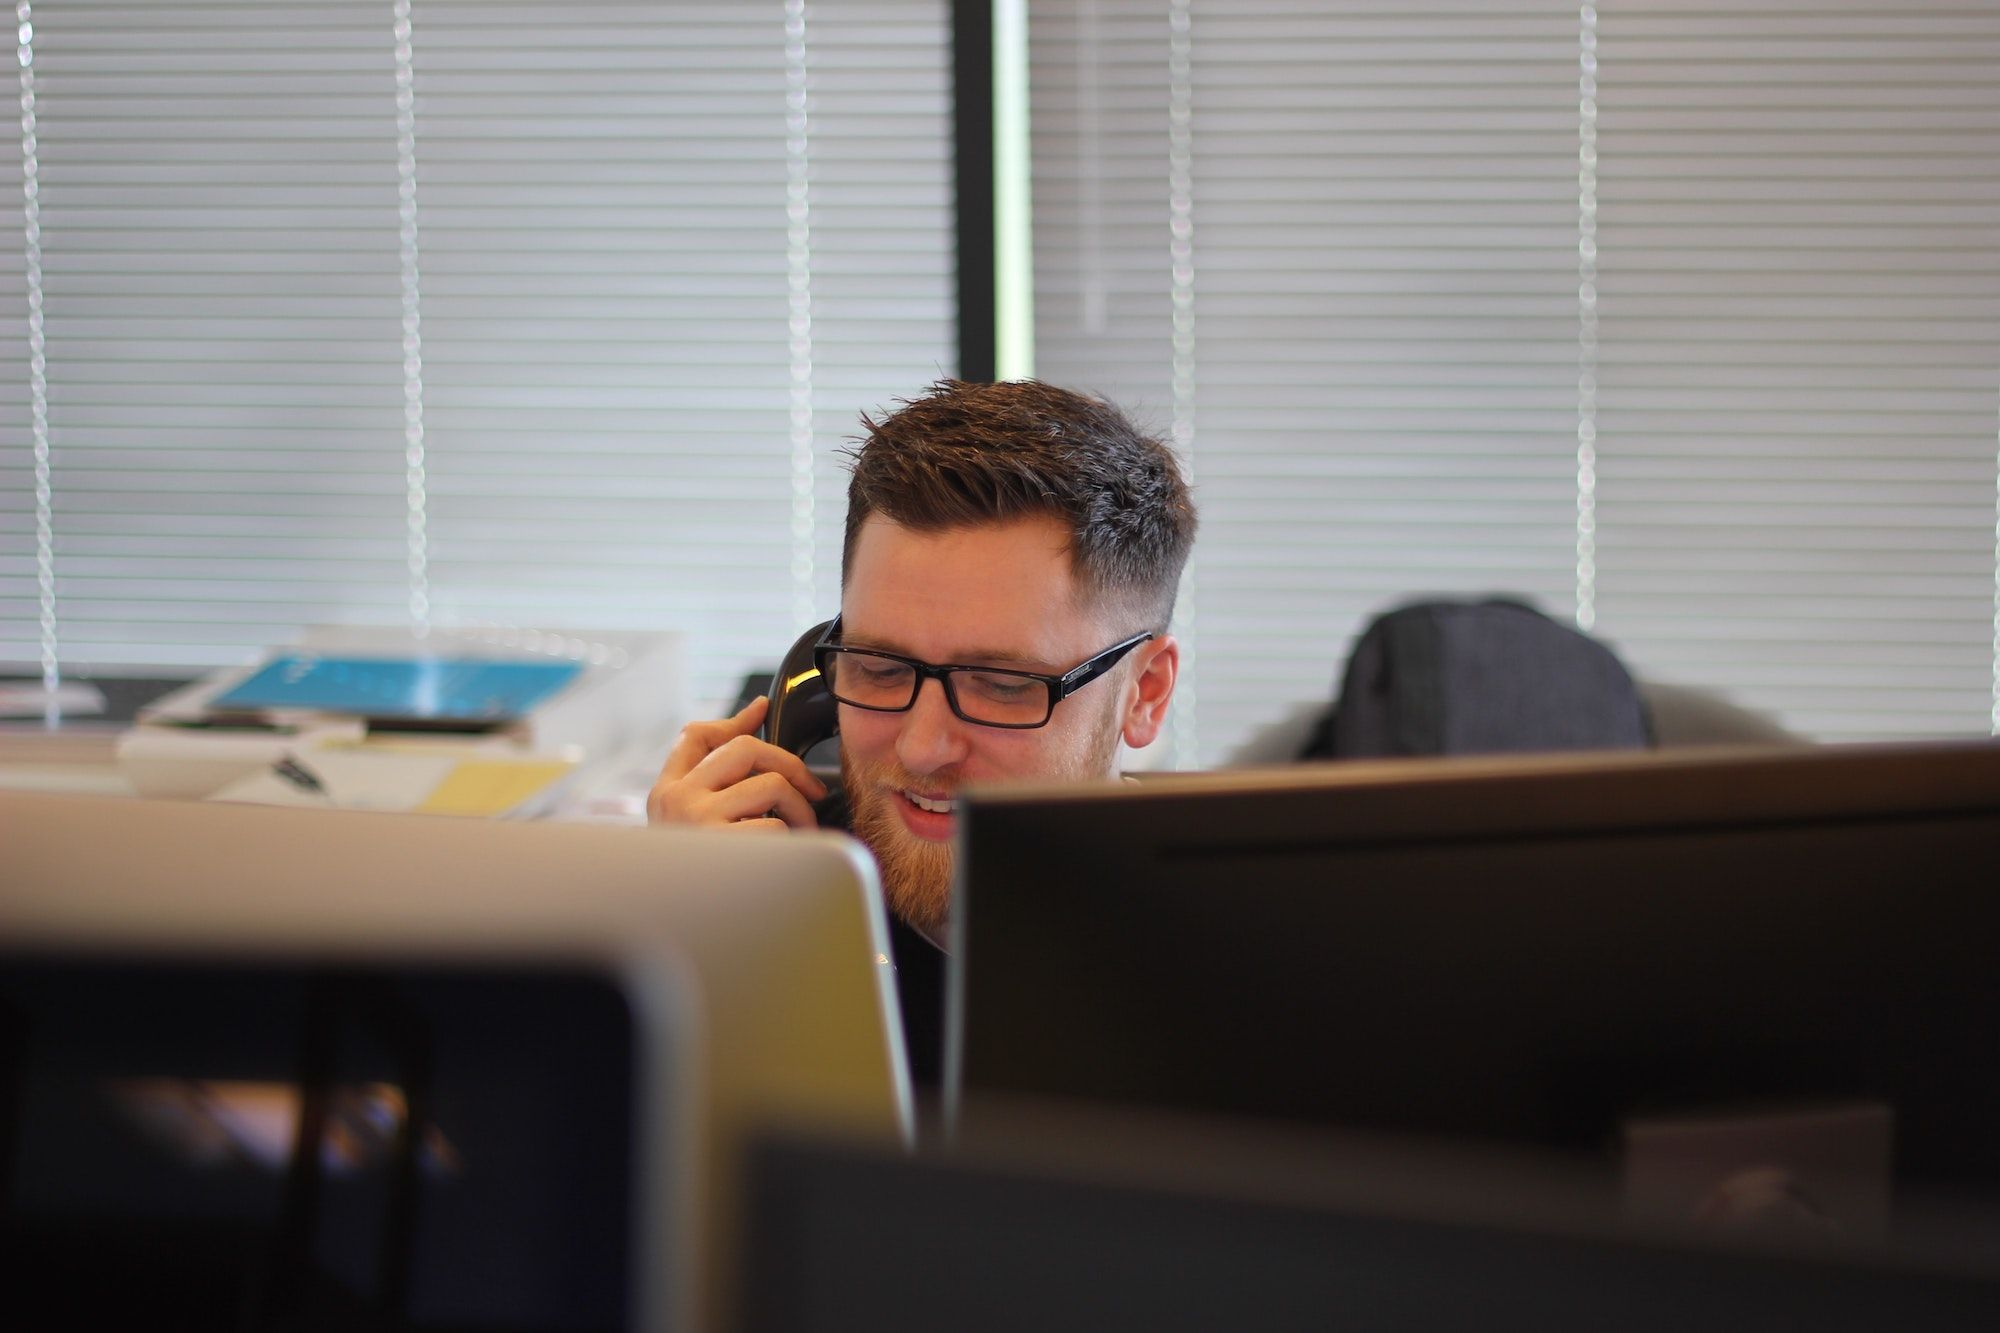 Employee making a phone call using a business VoIP provider